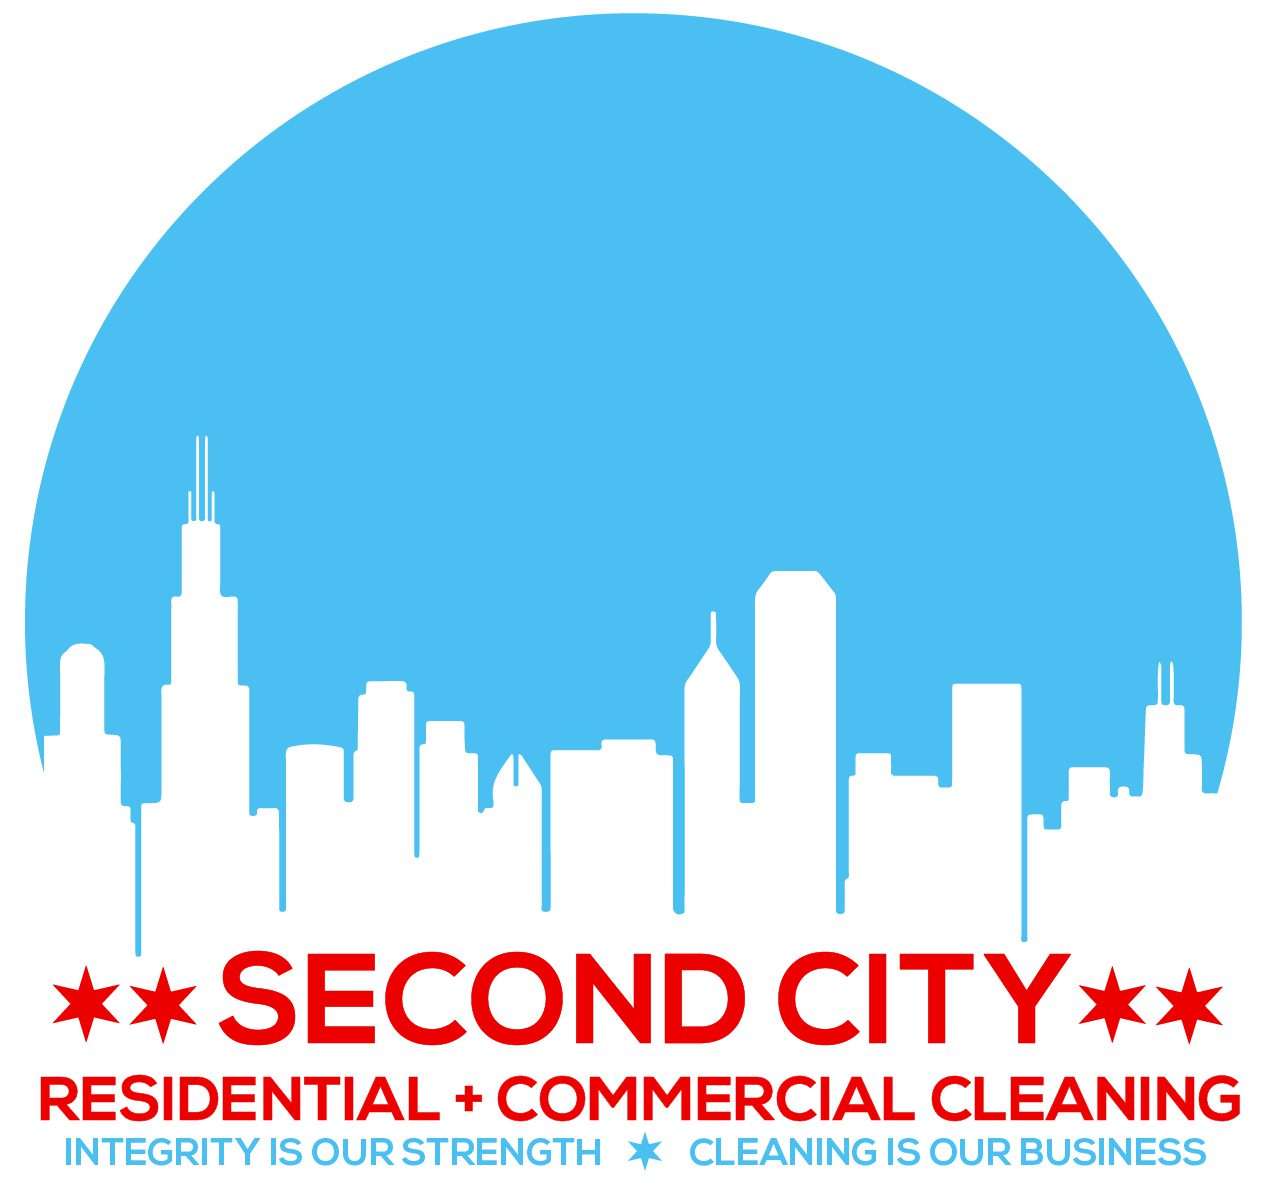 www.secondcitycleaning.com